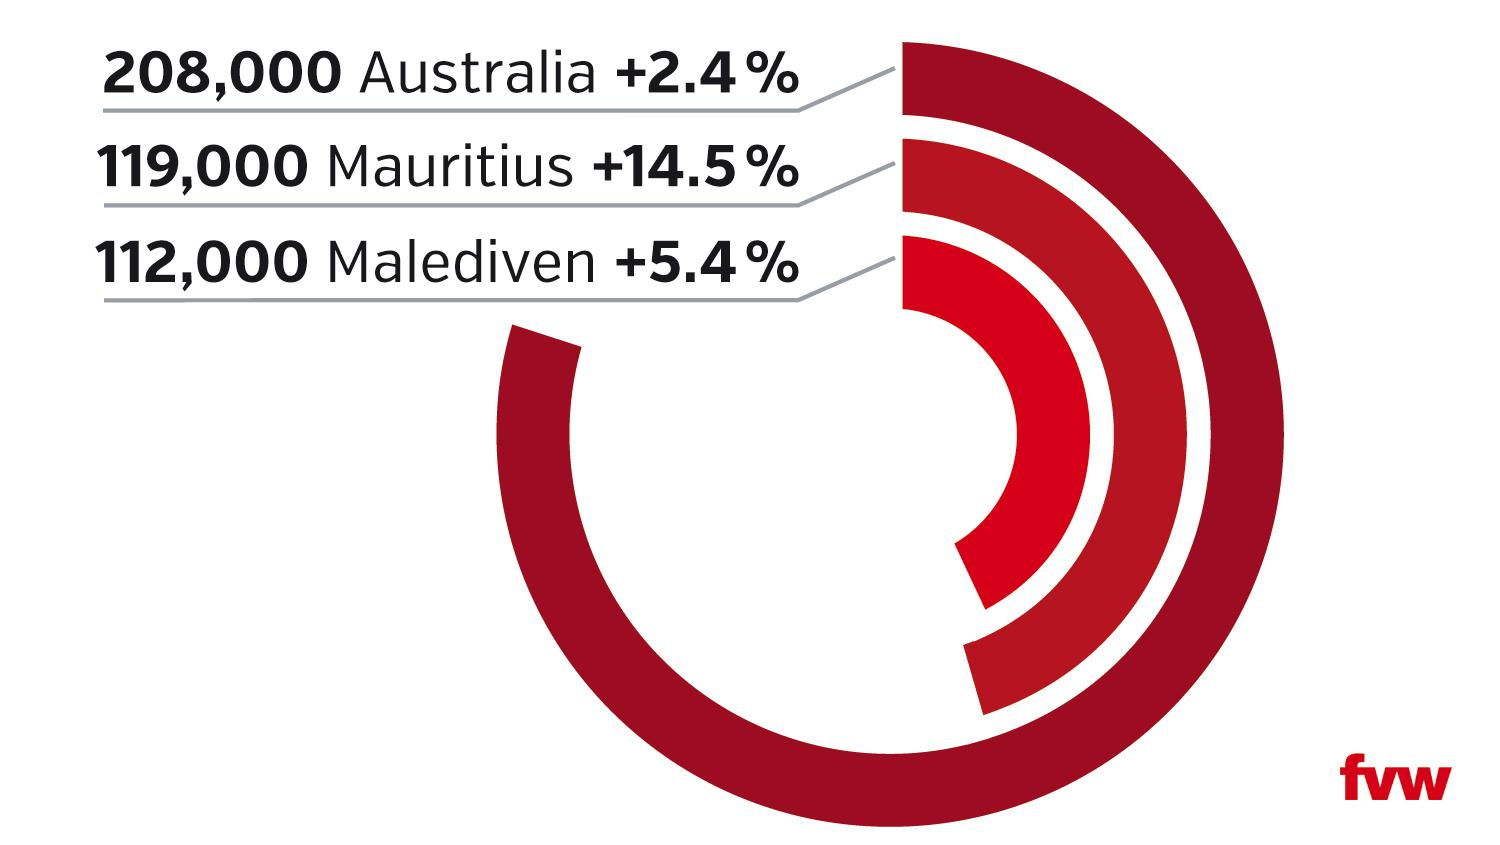 Australia is the top destination in the Pacific and Indian Ocean region for German holidaymakers but Mauritius is growing rapidly. The graphic shows total German visitor numbers last year and percentage changes compared to 2016.